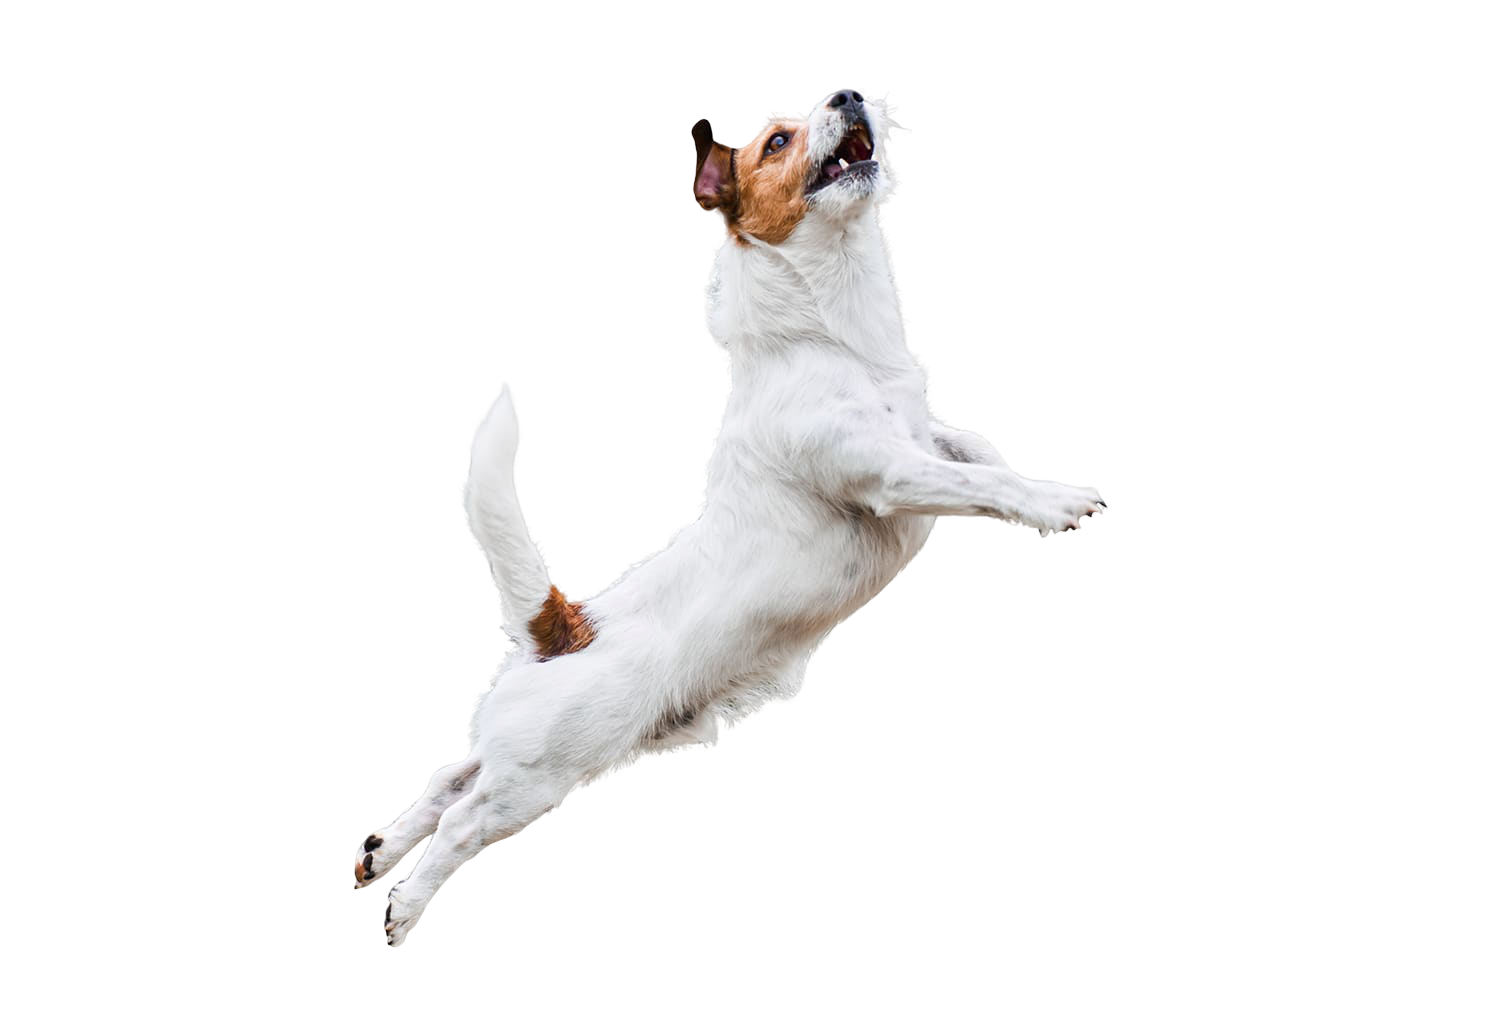 terrier-dog-isolated-on-white-jumping